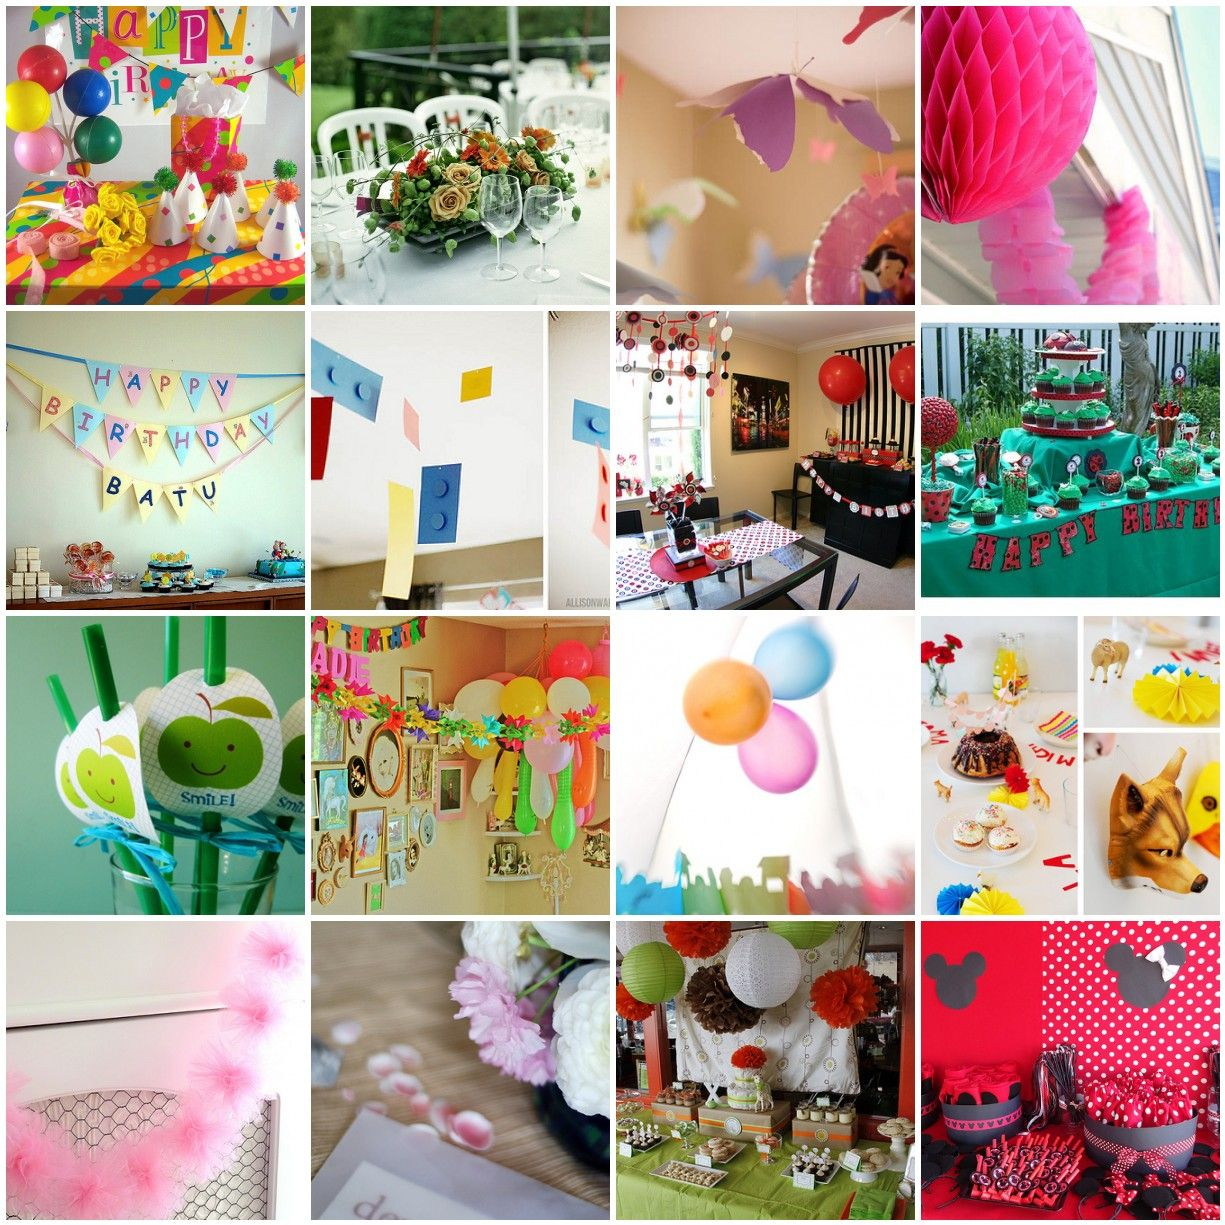 Decorating For A Party birthday room decorations ideas